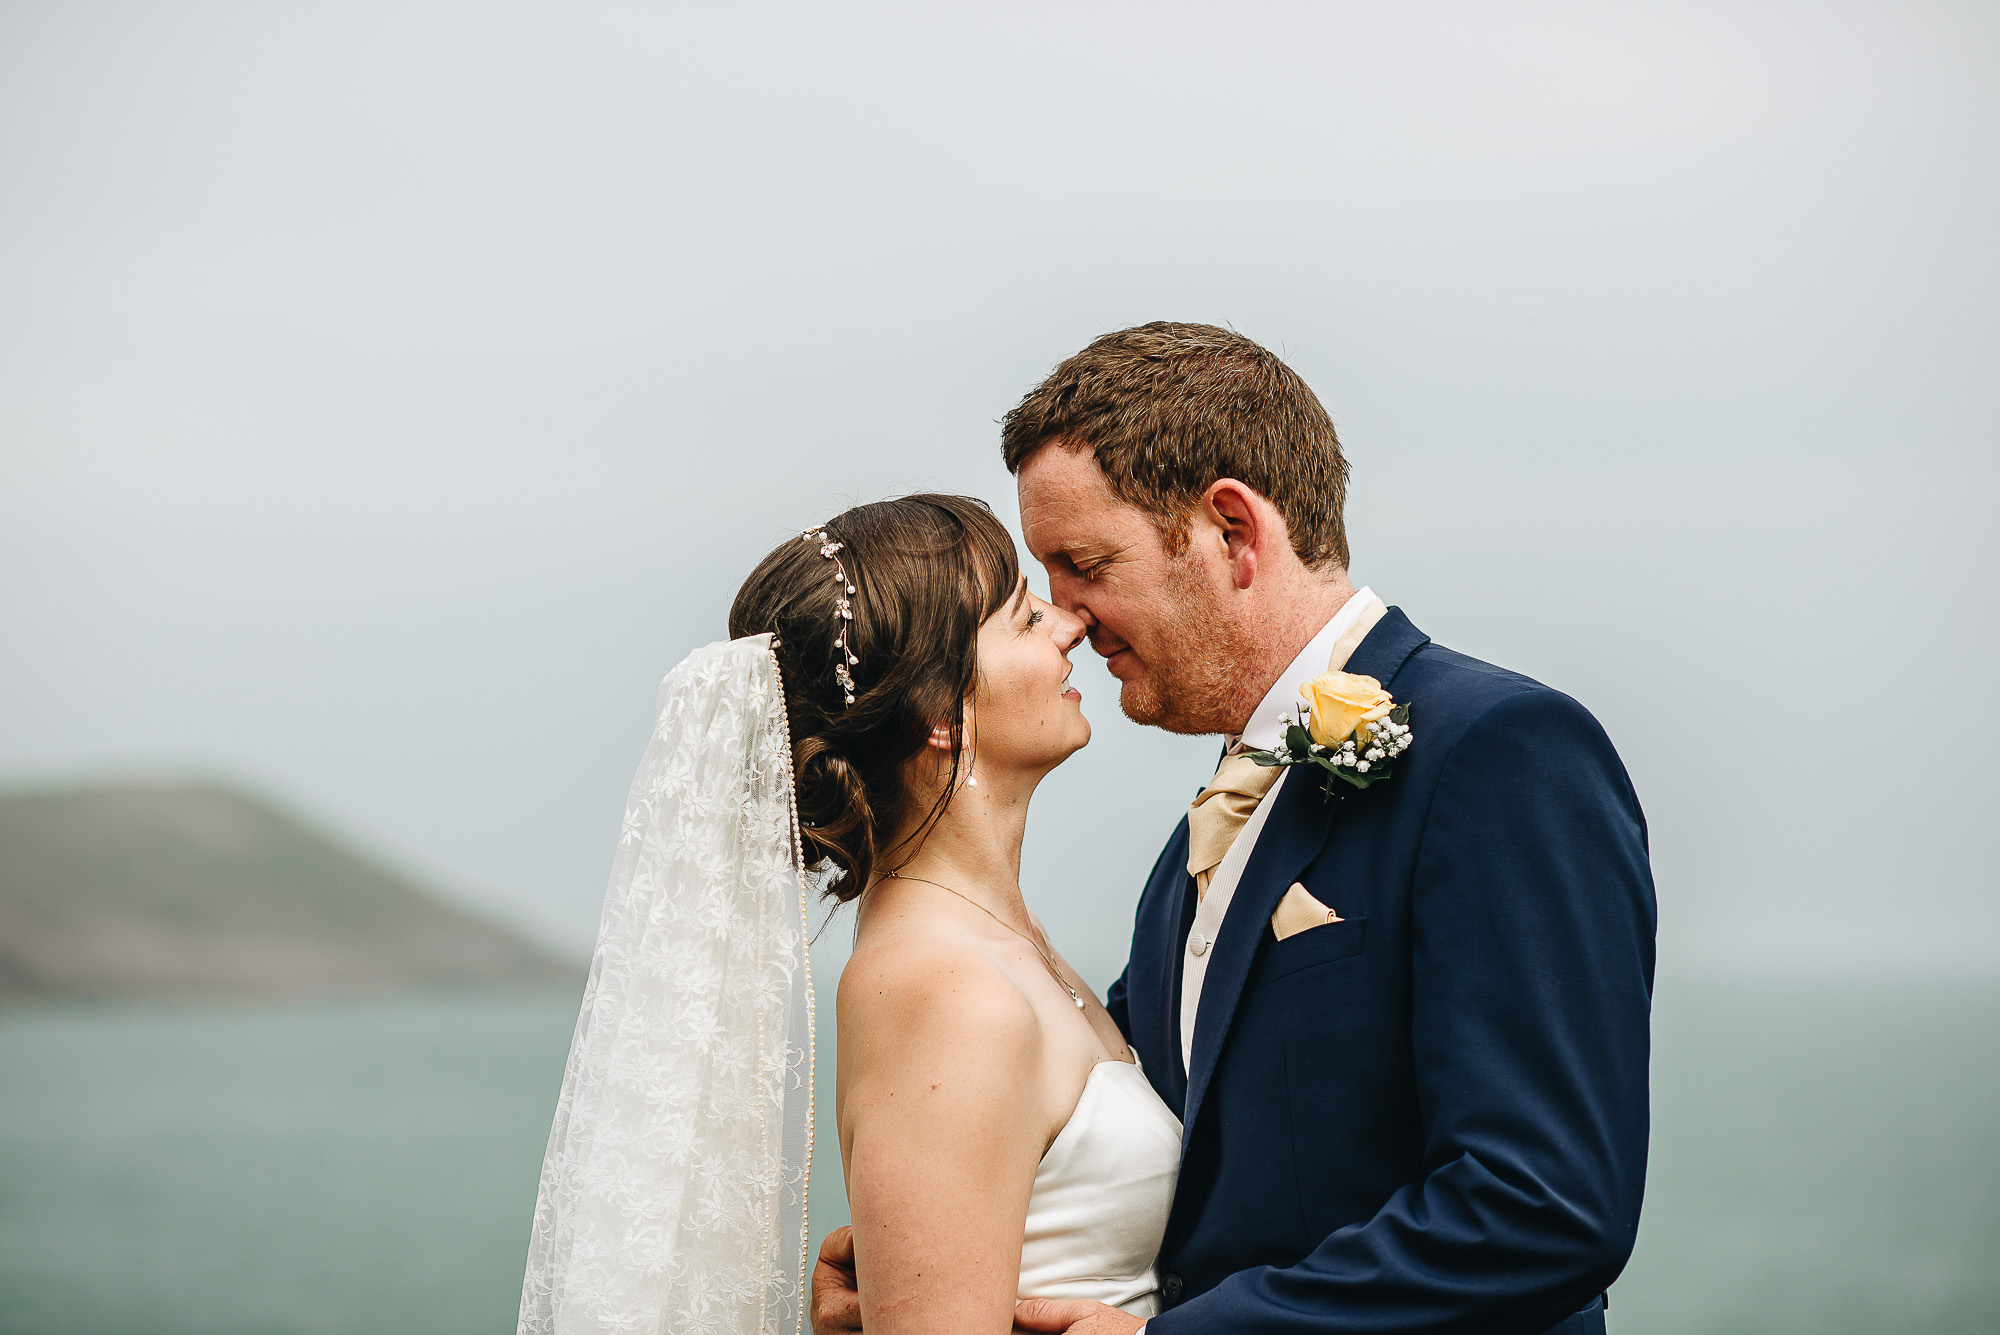 Swansea and South Wales Wedding Photographer | Mumbles Wedding | The New Gower Hotel |